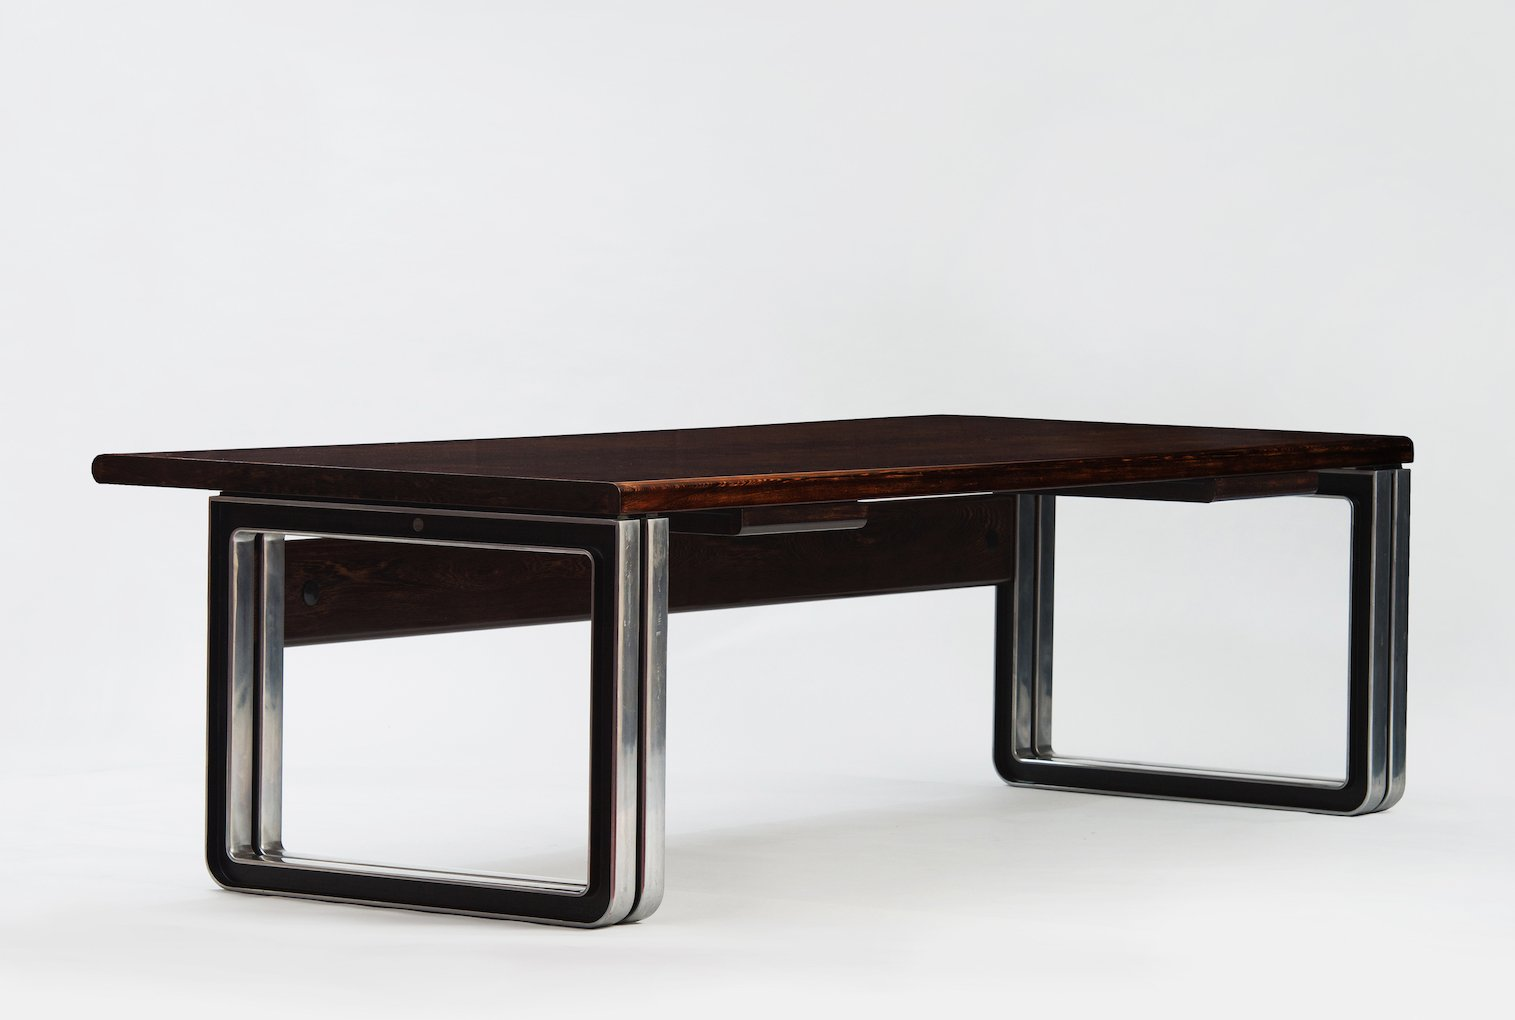 Vintage Wenge Desk By Osvaldo Borsani For Tecno